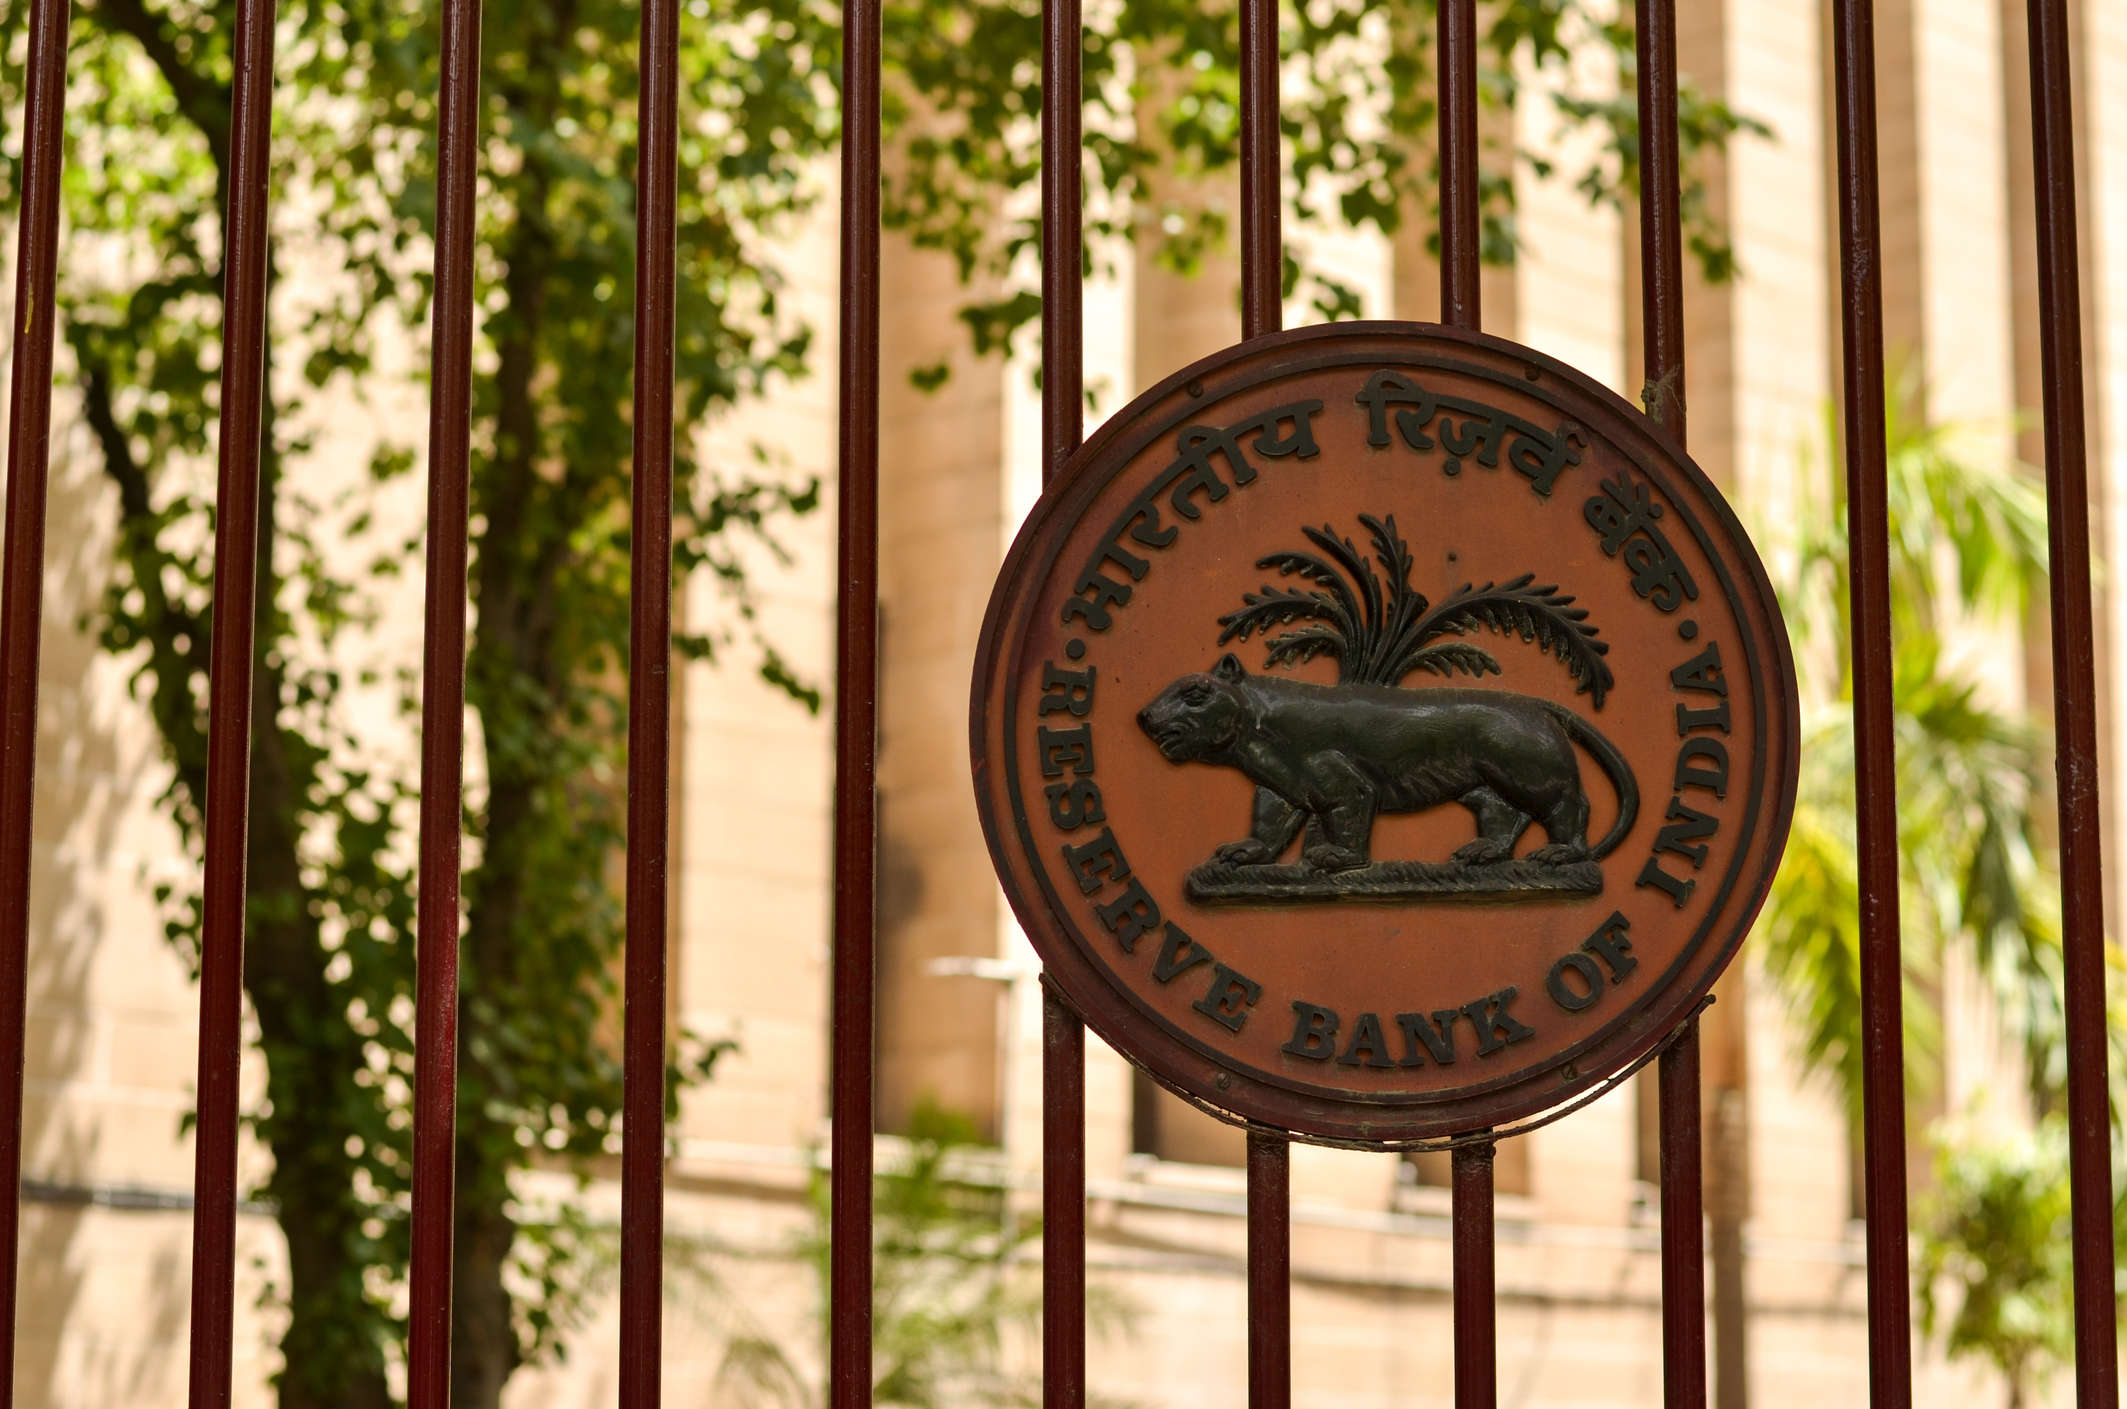 RBI warns against combination of high public debt, low interest rates